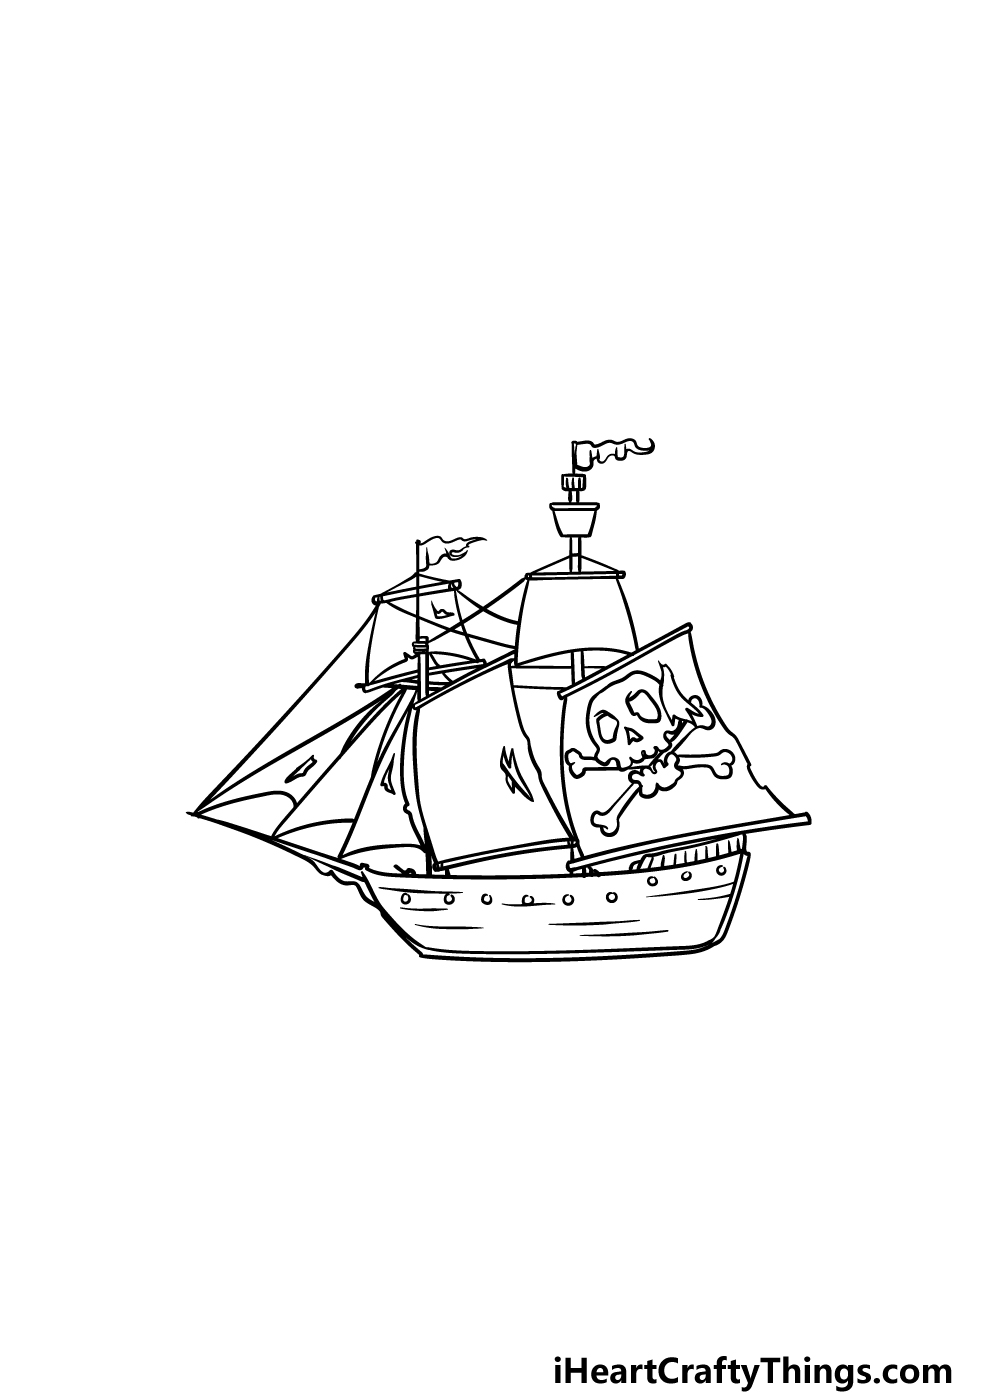 drawing a pirate ship step 5